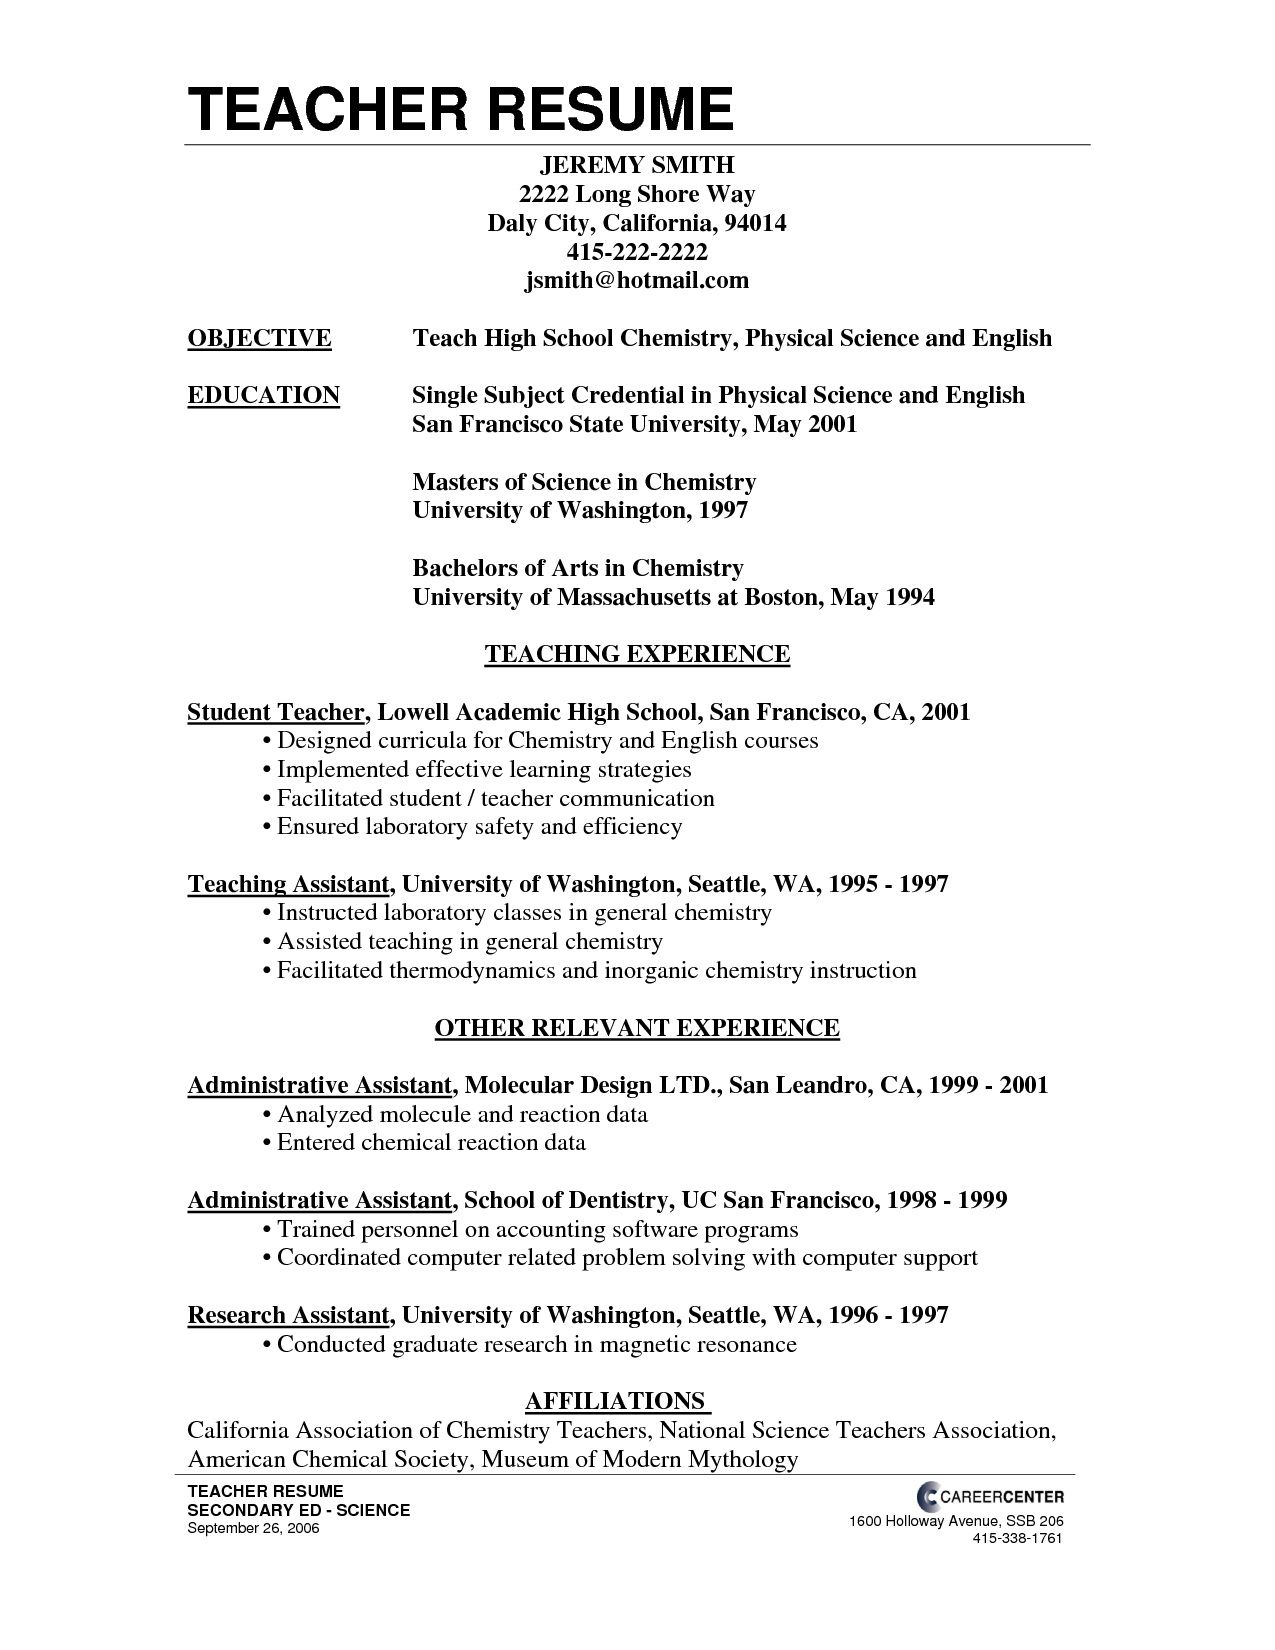 Resume Templates Education High School Teacher Resume Http Jobresumesample